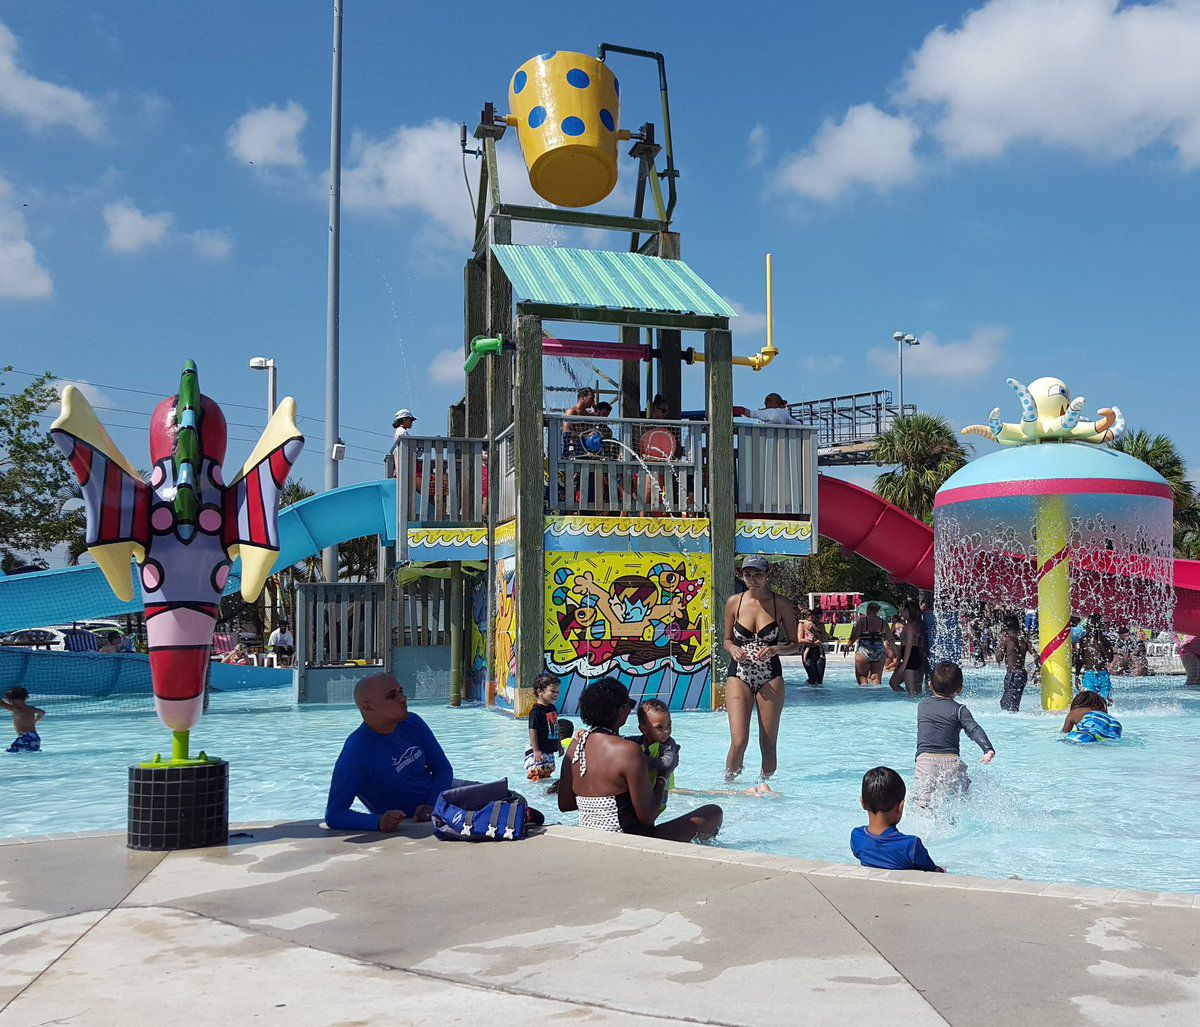 Grapeland Water Park: The Complete Guide